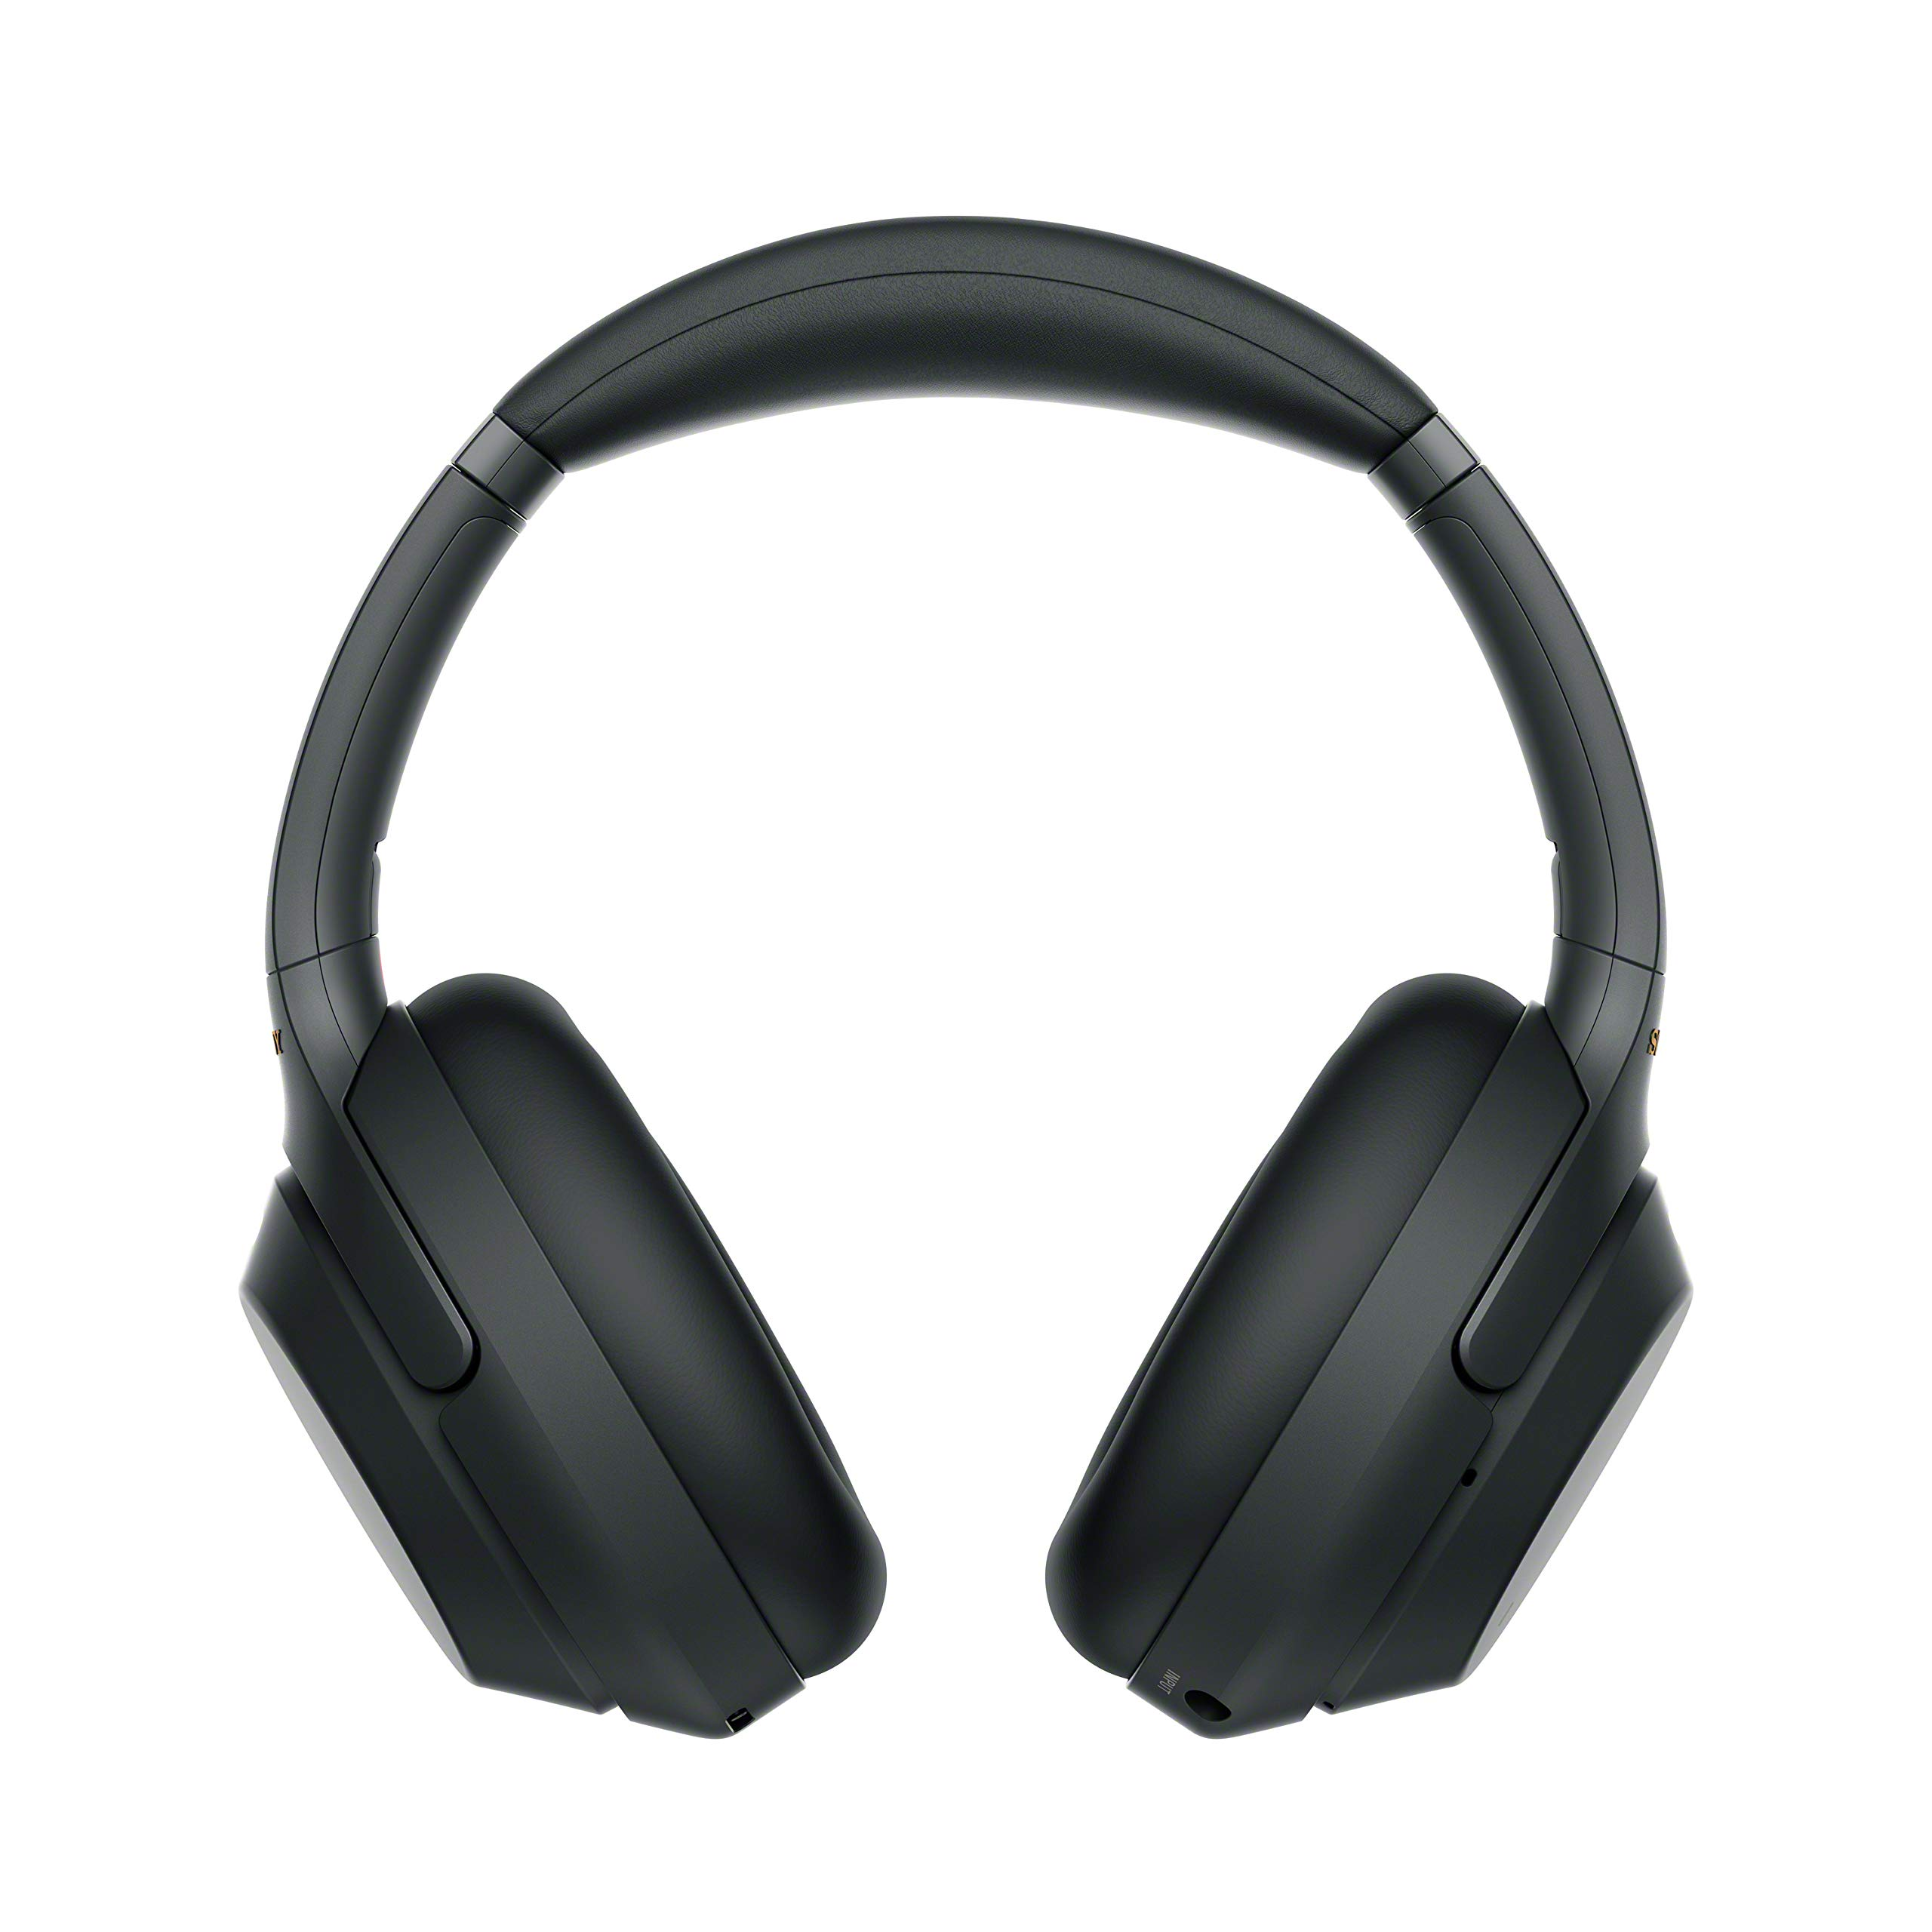 Sony WH1000XM3 Bluetooth Wireless Noise Canceling Headphones, Black WH-1000XM3/B (Renewed) by Sony (Image #2)